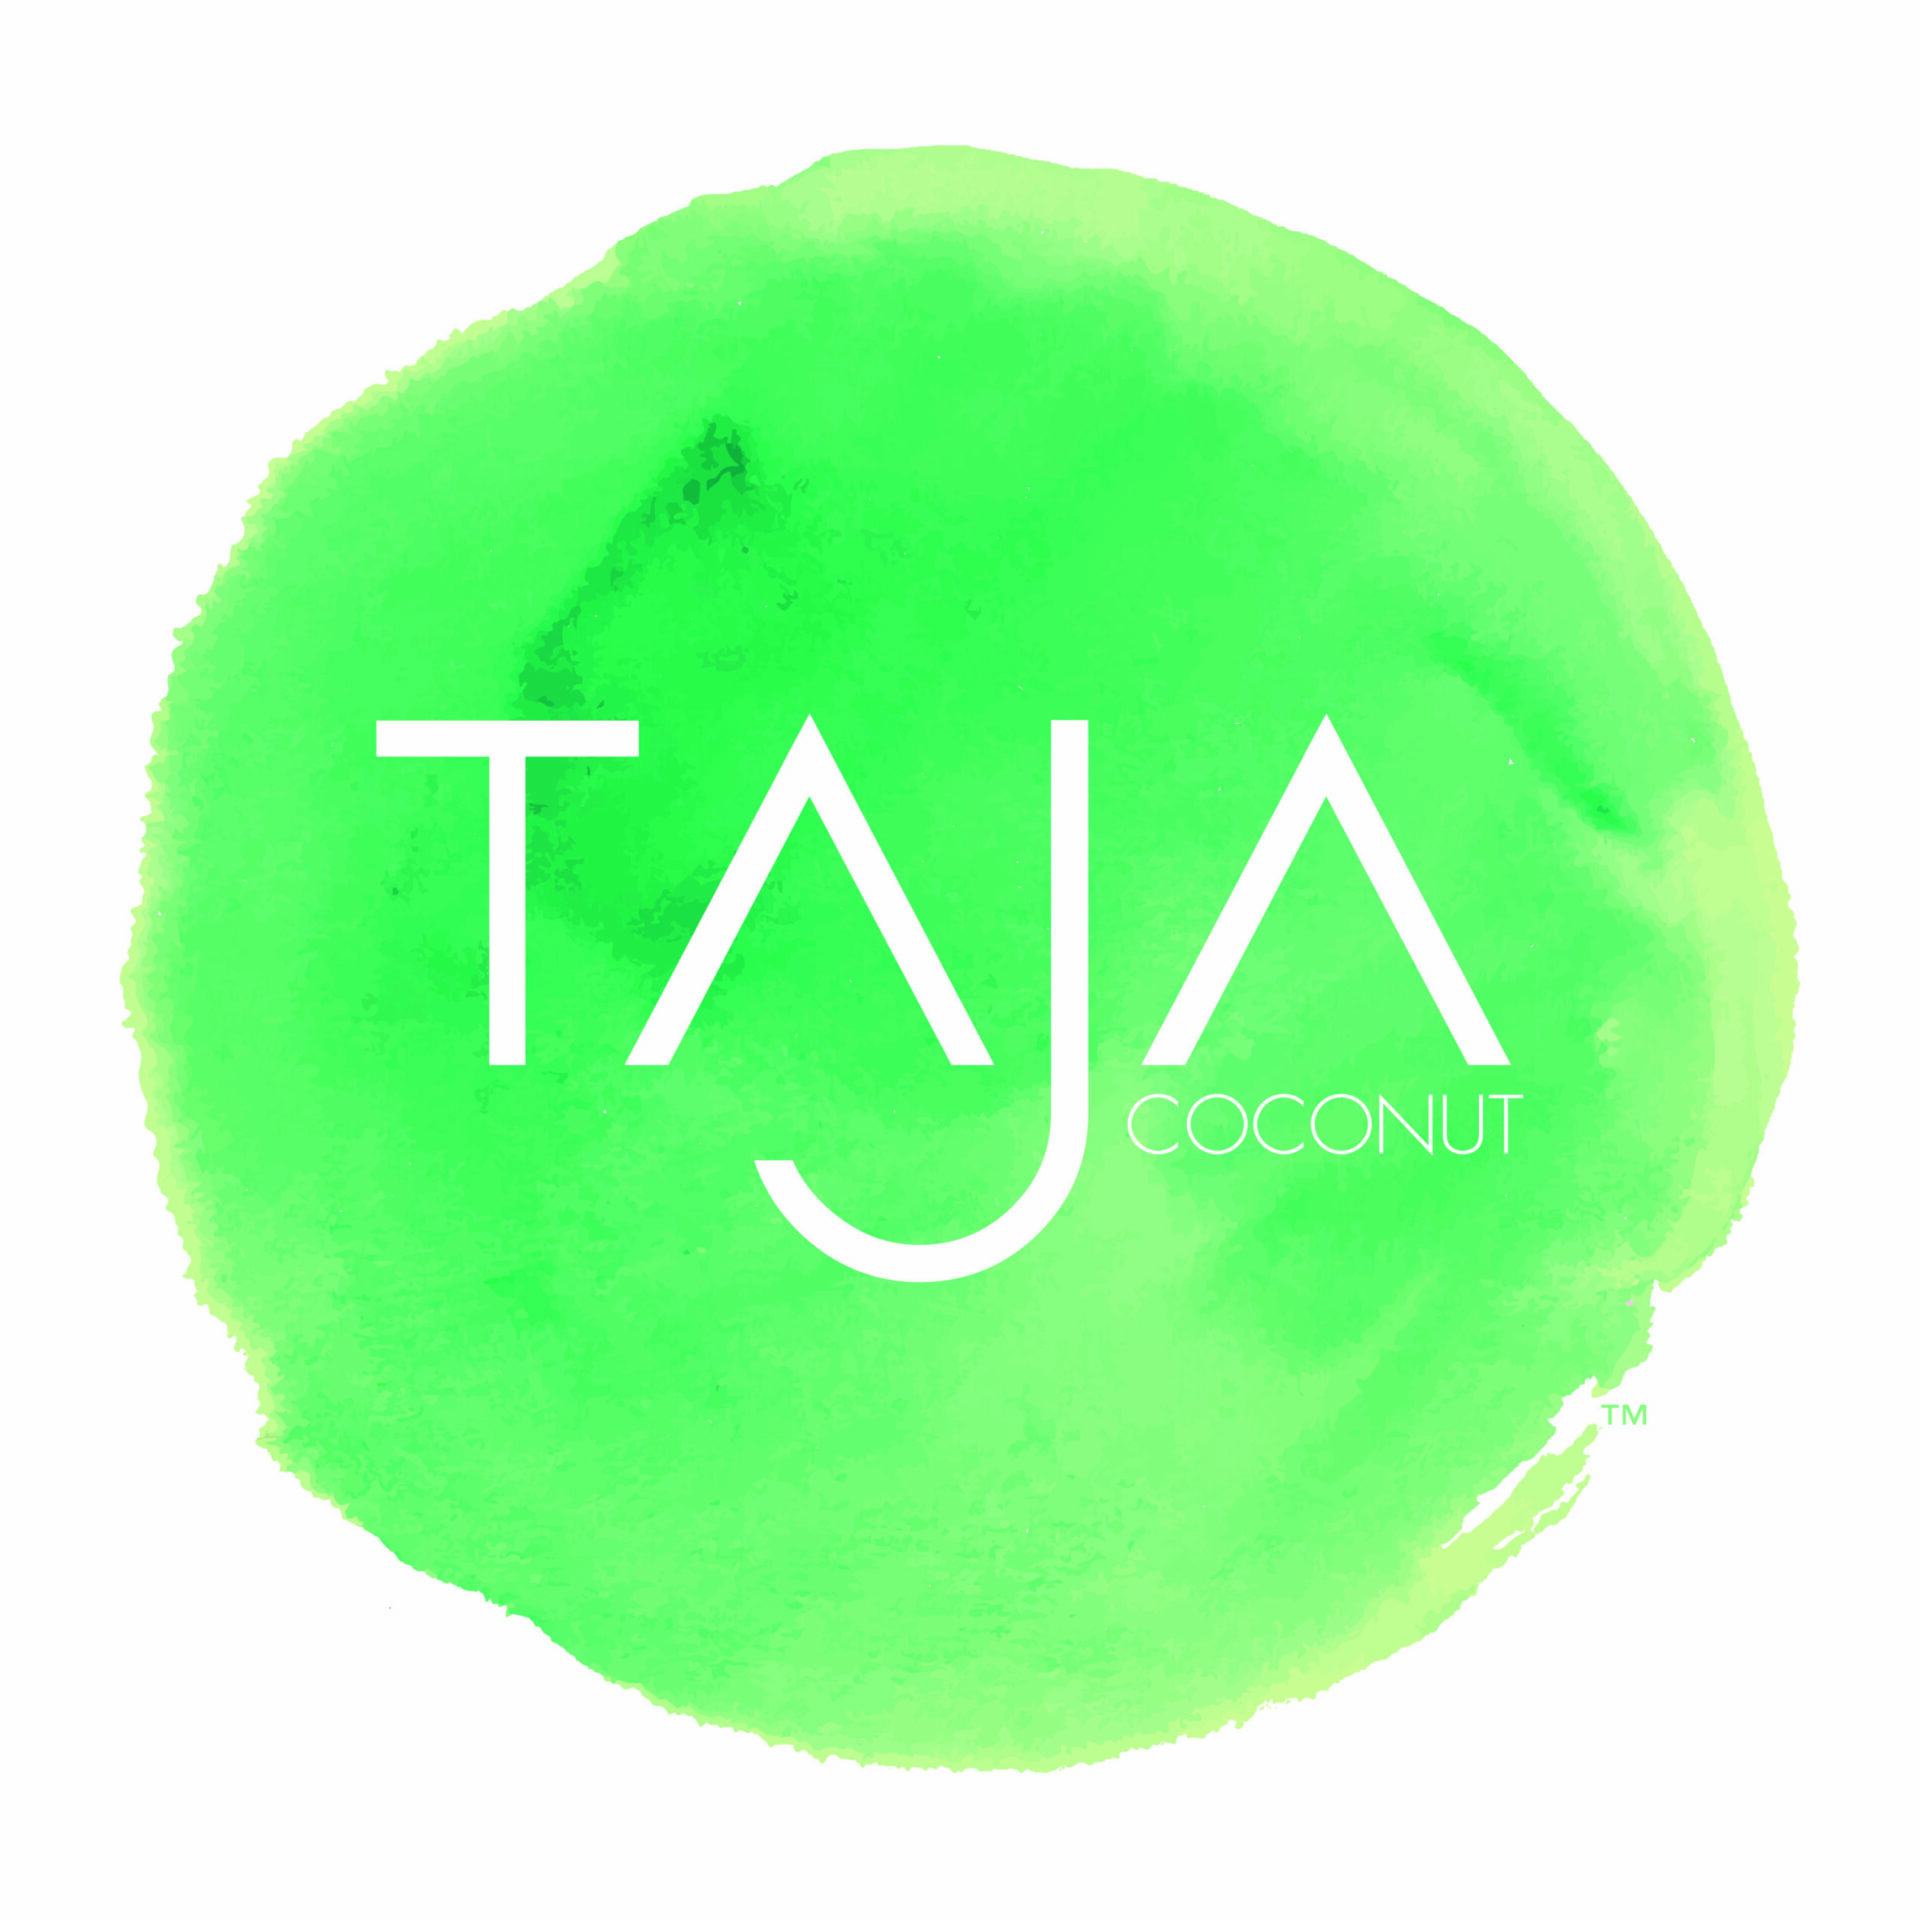 TAJA Coconut Water - World's first, patented cold-filtered raw 100% coconut water Straight from the coconut, never from concentrate<br><br><strong>https://tajacoconut.com/</strong>